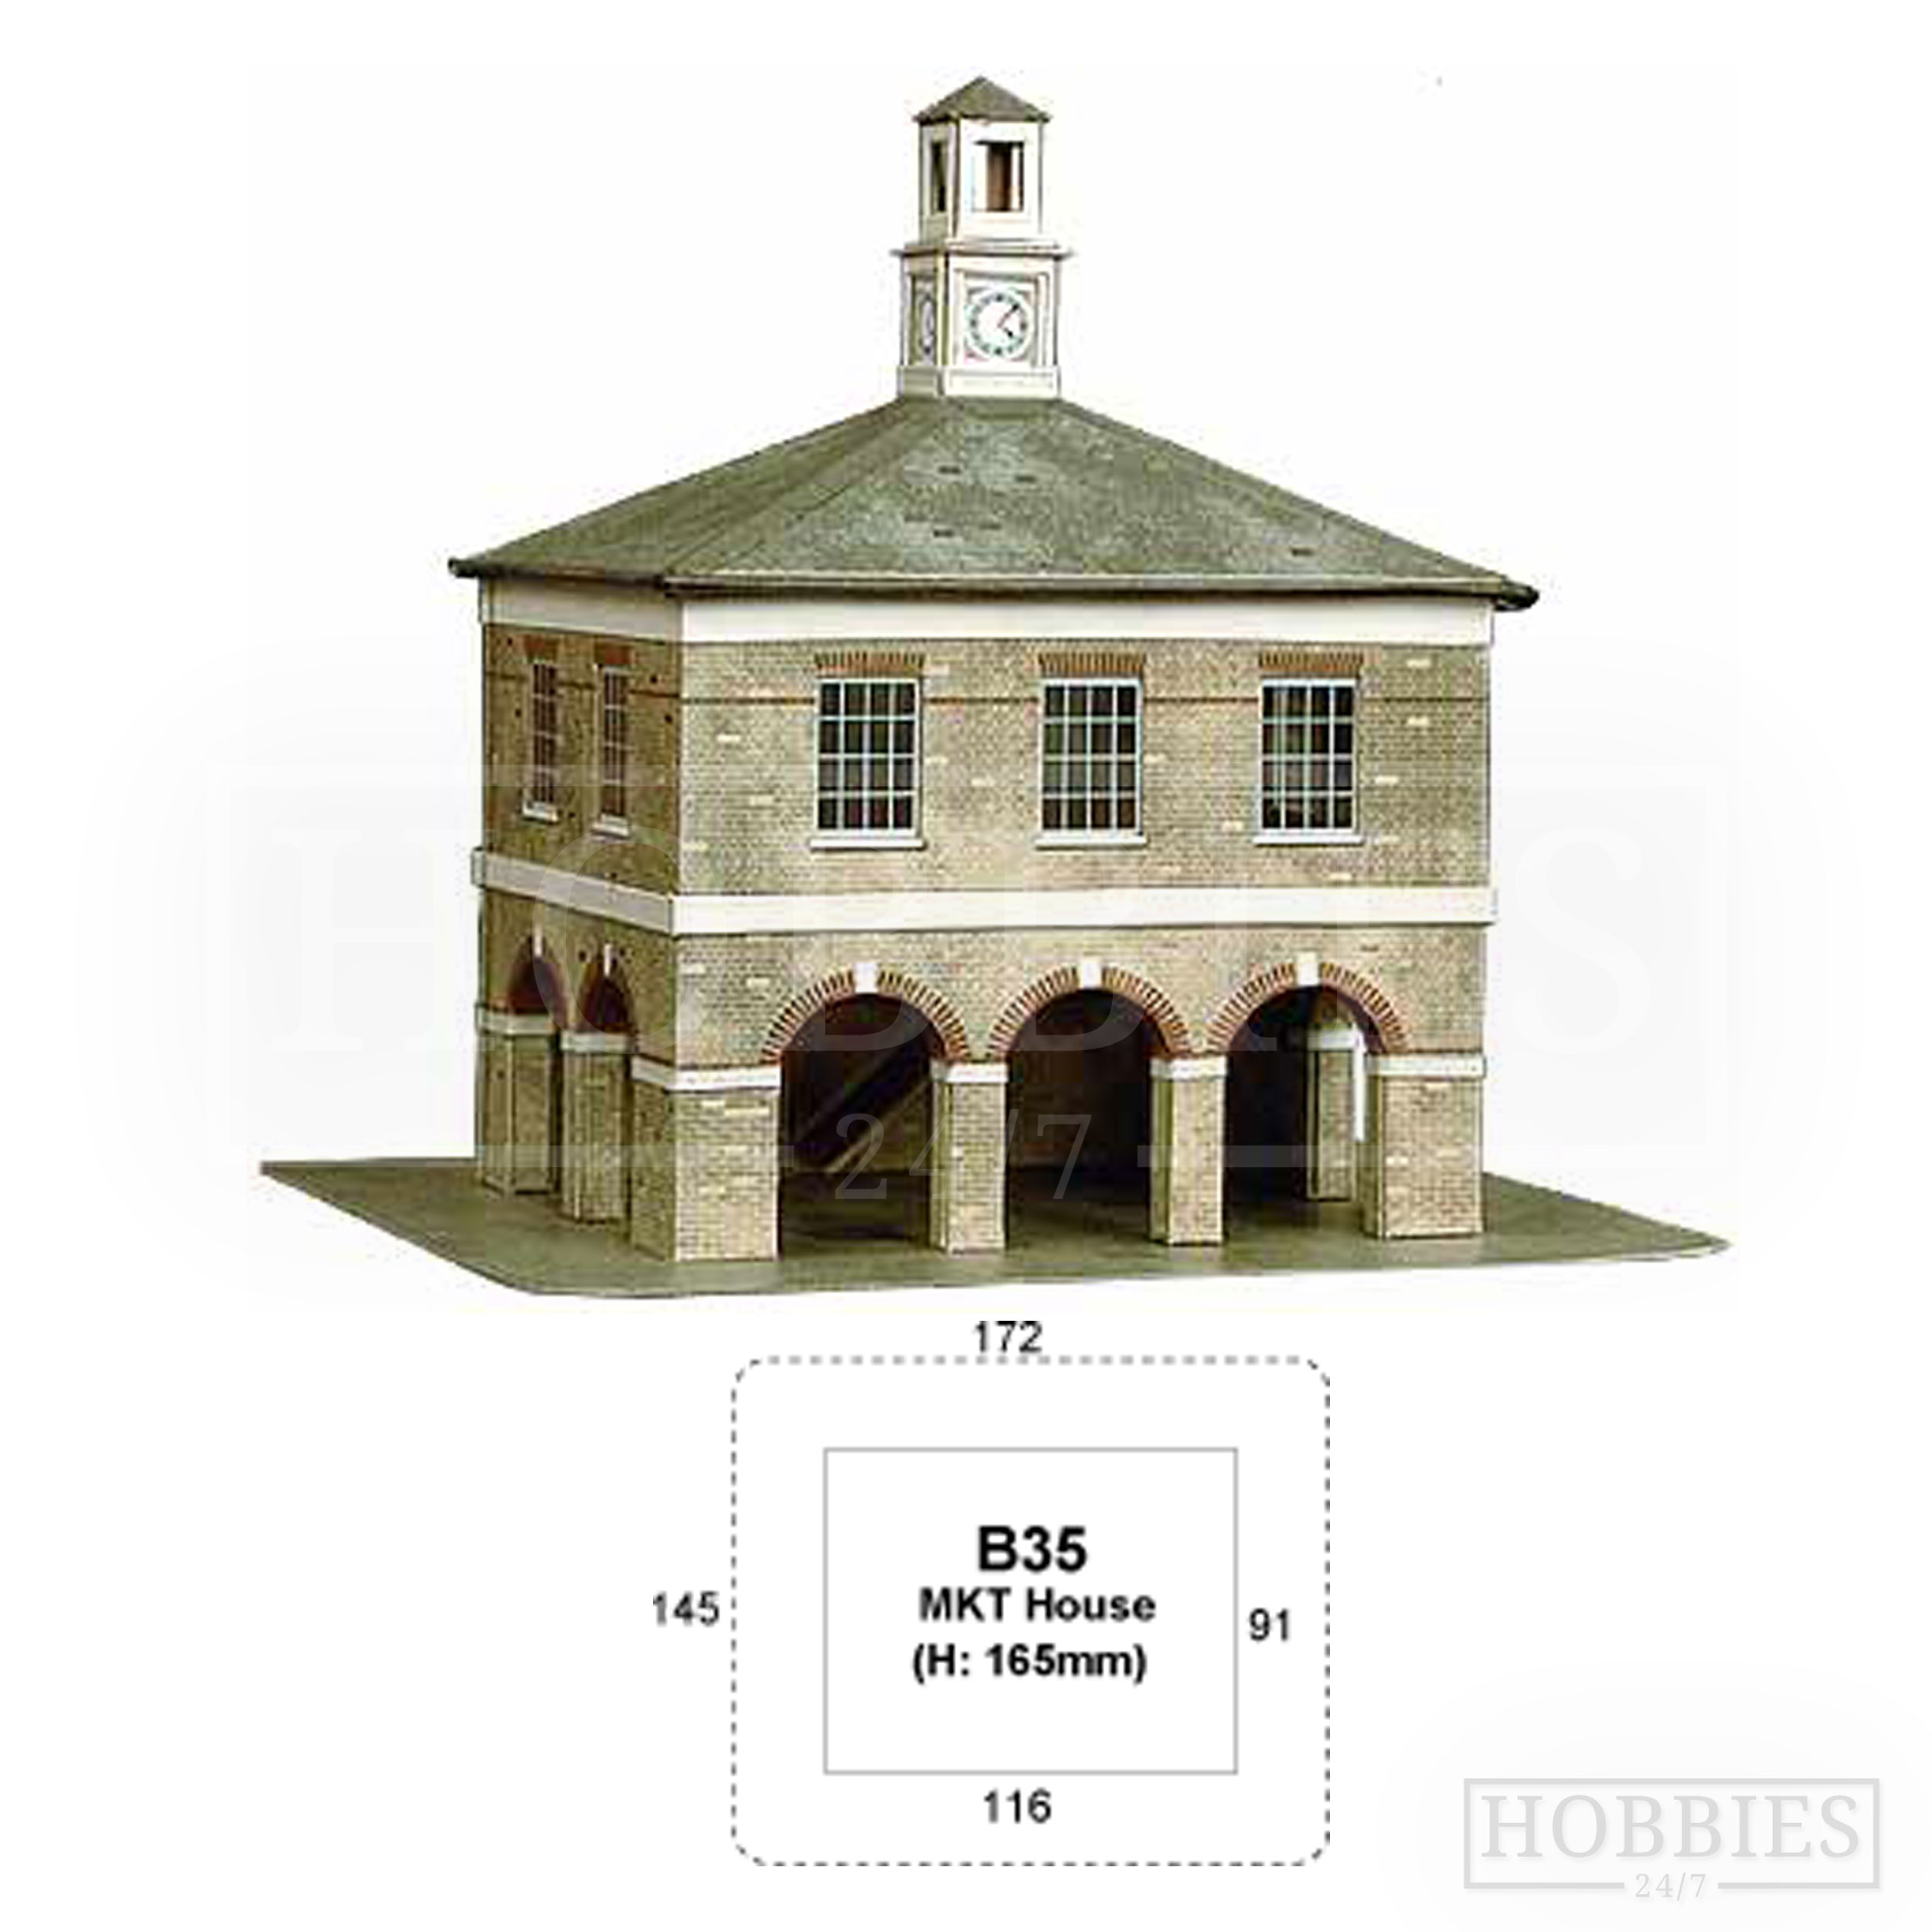 B35 Market House Superquick Card Kit